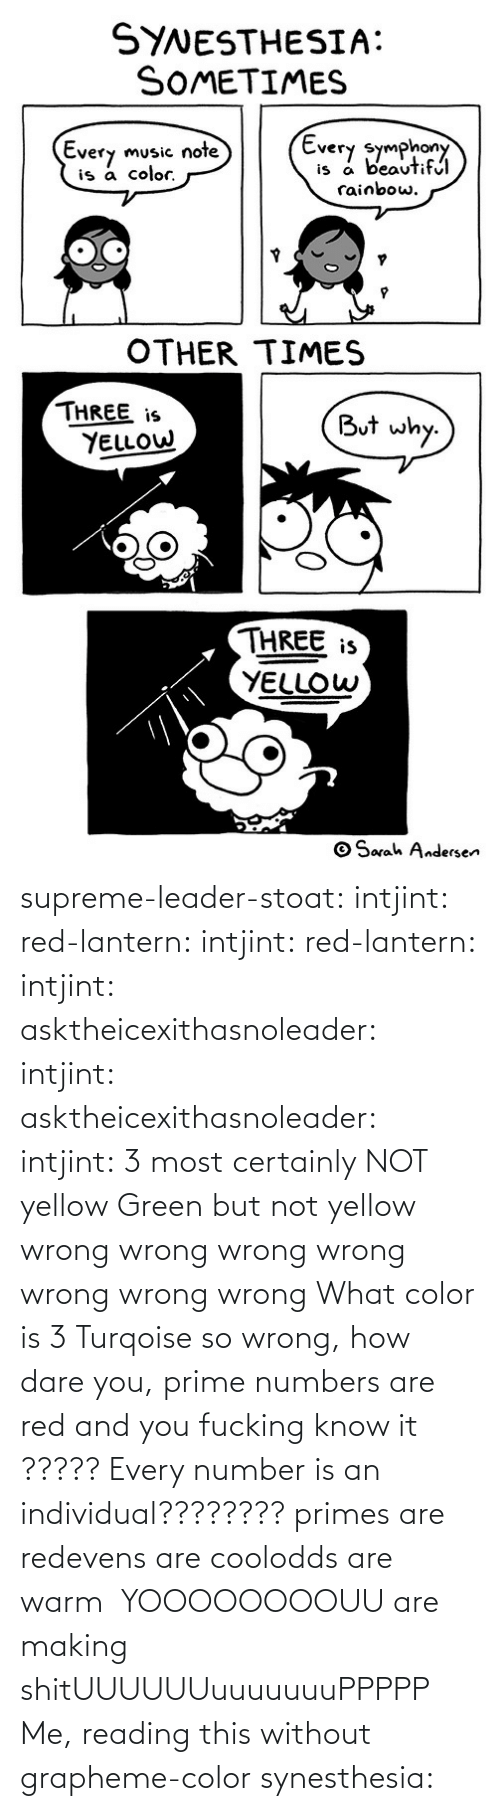 leader: supreme-leader-stoat: intjint:  red-lantern:  intjint:  red-lantern:  intjint:  asktheicexithasnoleader:  intjint:   asktheicexithasnoleader:  intjint:  3 most certainly NOT yellow   Green but not yellow  wrong wrong wrong wrong wrong wrong wrong    What color is 3  Turqoise  so wrong, how dare you, prime numbers are red and you fucking know it   ????? Every number is an individual????????  primes are redevens are coolodds are warm   YOOOOOOOOUU are making shitUUUUUUuuuuuuuPPPPP  Me, reading this without grapheme-color synesthesia: